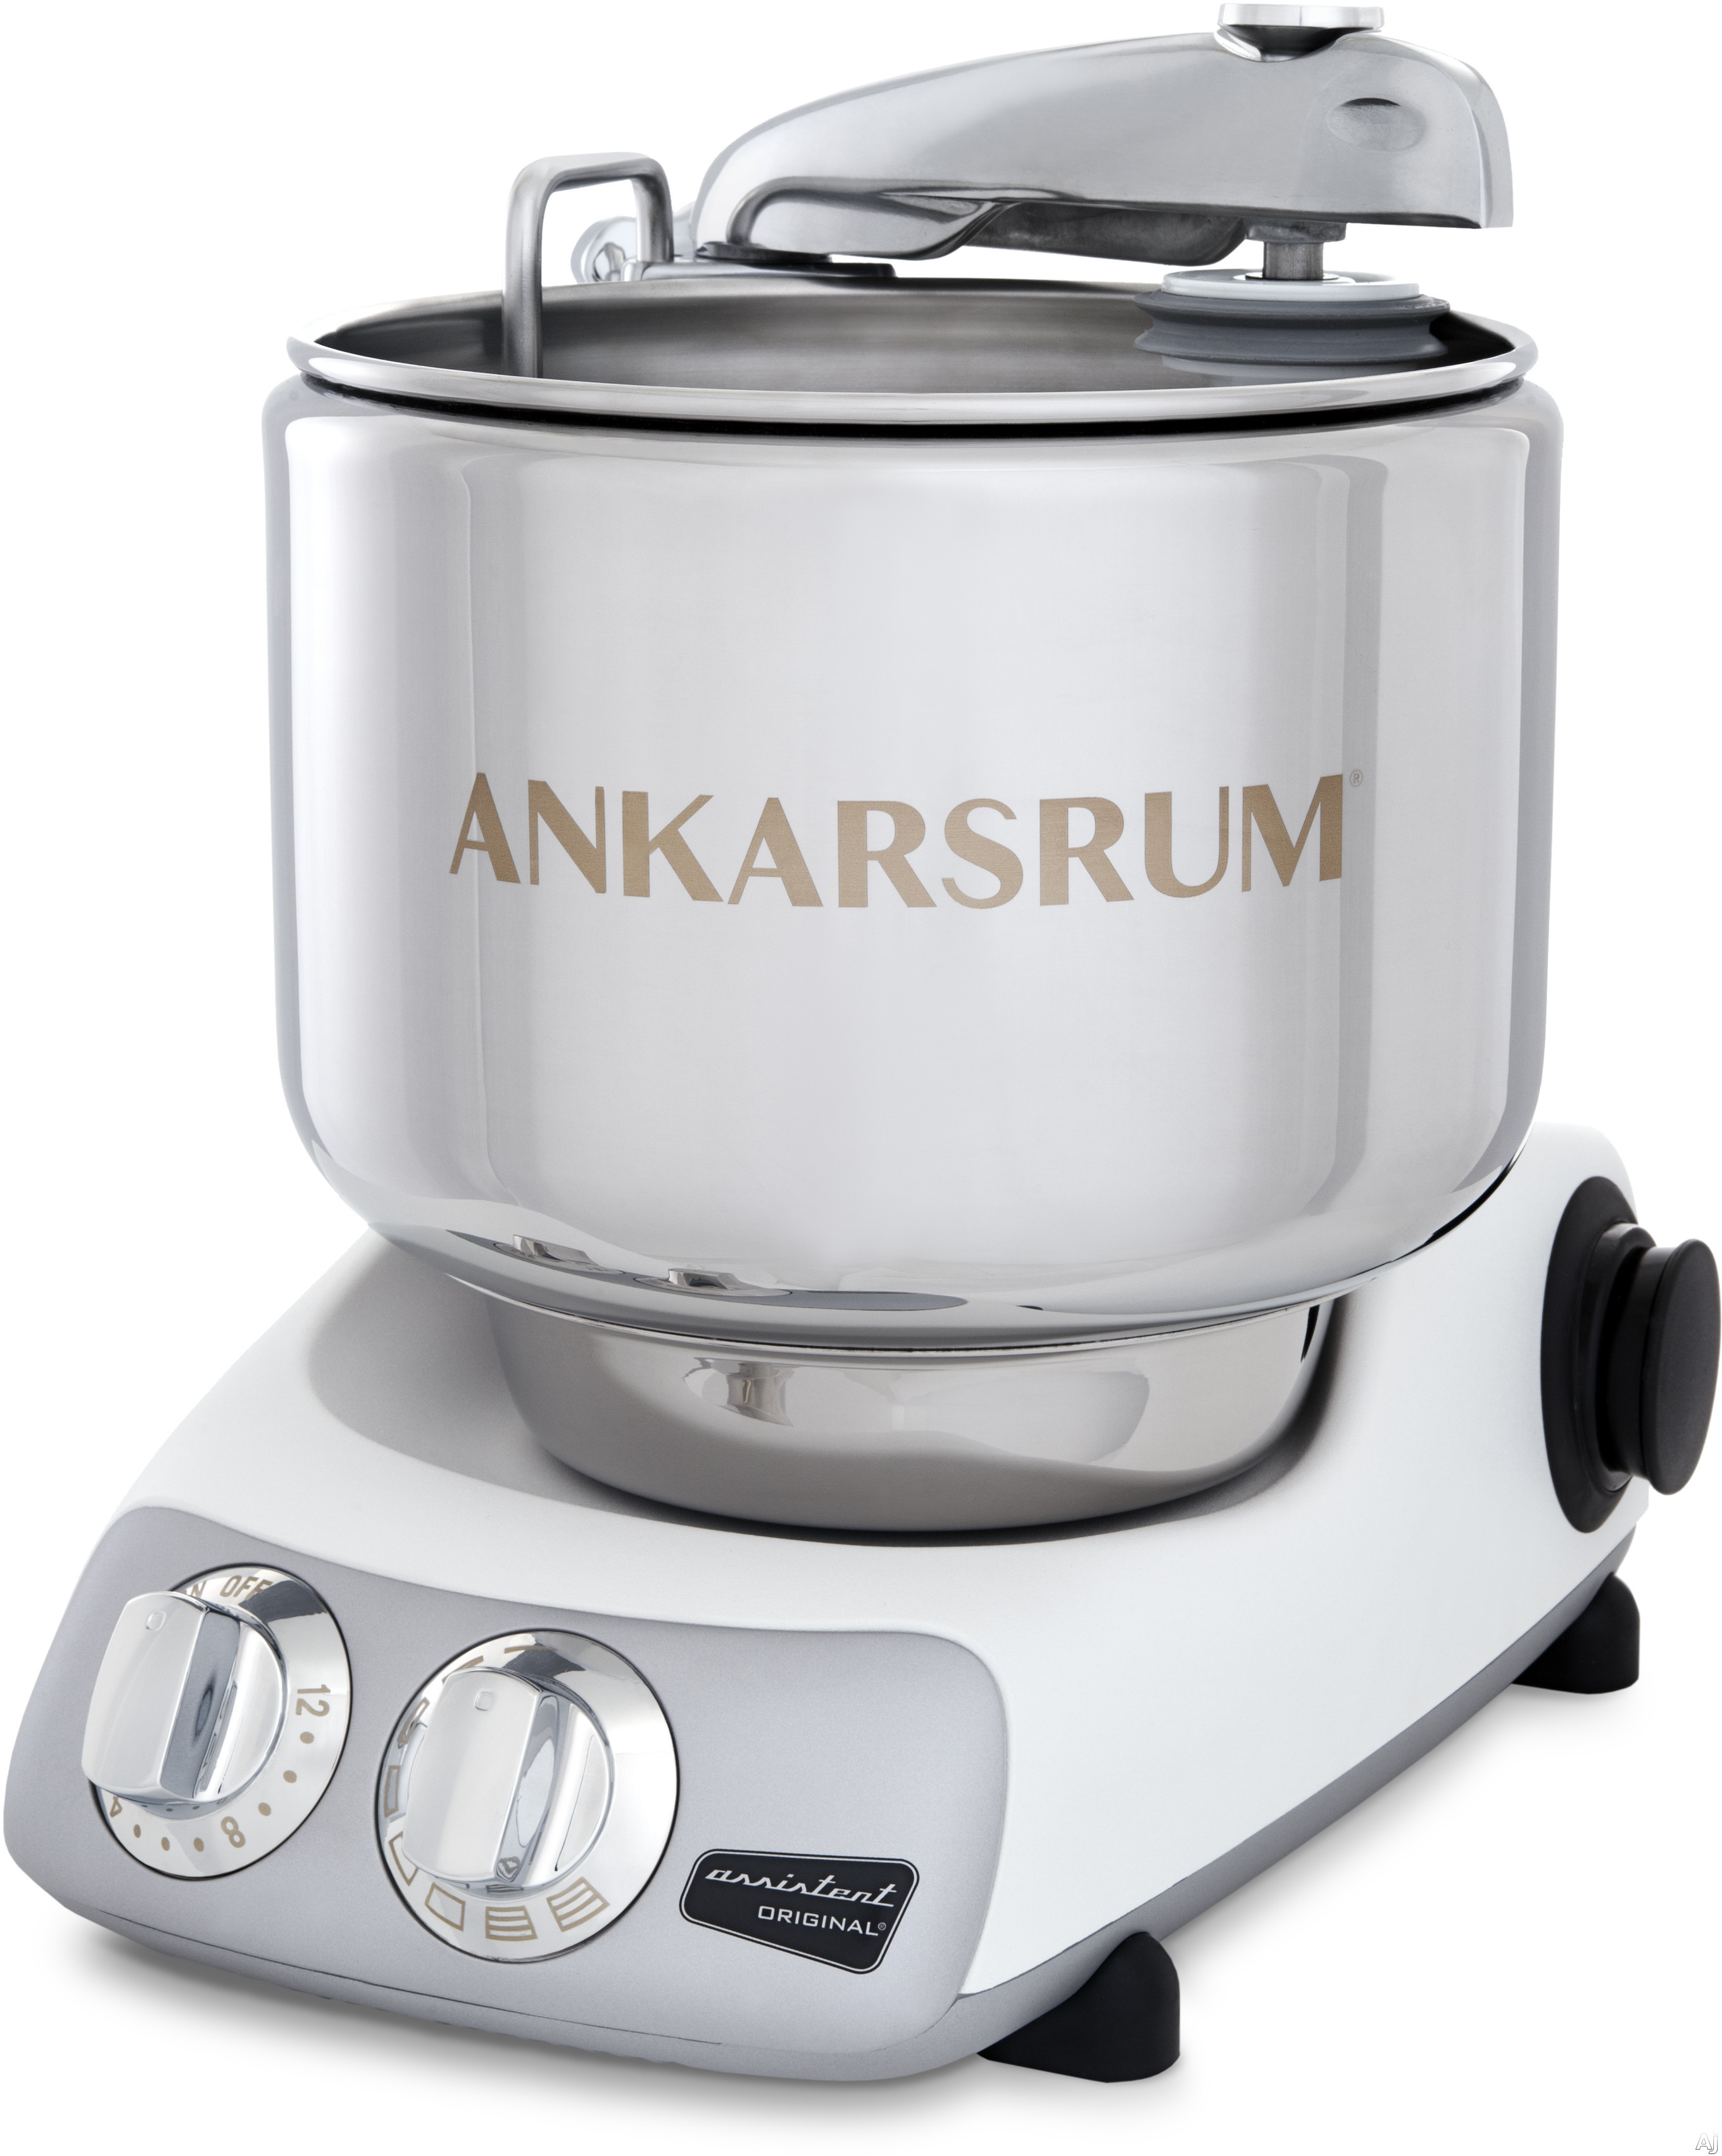 Ankarsrum AKM6230MW 7 Liter Stainless Steel Mixer with Speed Sensor, Cookie Beaters, Dough Roller, Dough Scraper, Dough Spatula Dough Hook Dust Cover, Removable Power Cord, Instructional DVD, 3.6 qt. Double Whisk Bowl, 600 Watt Motor and Timer: Mineral Wh